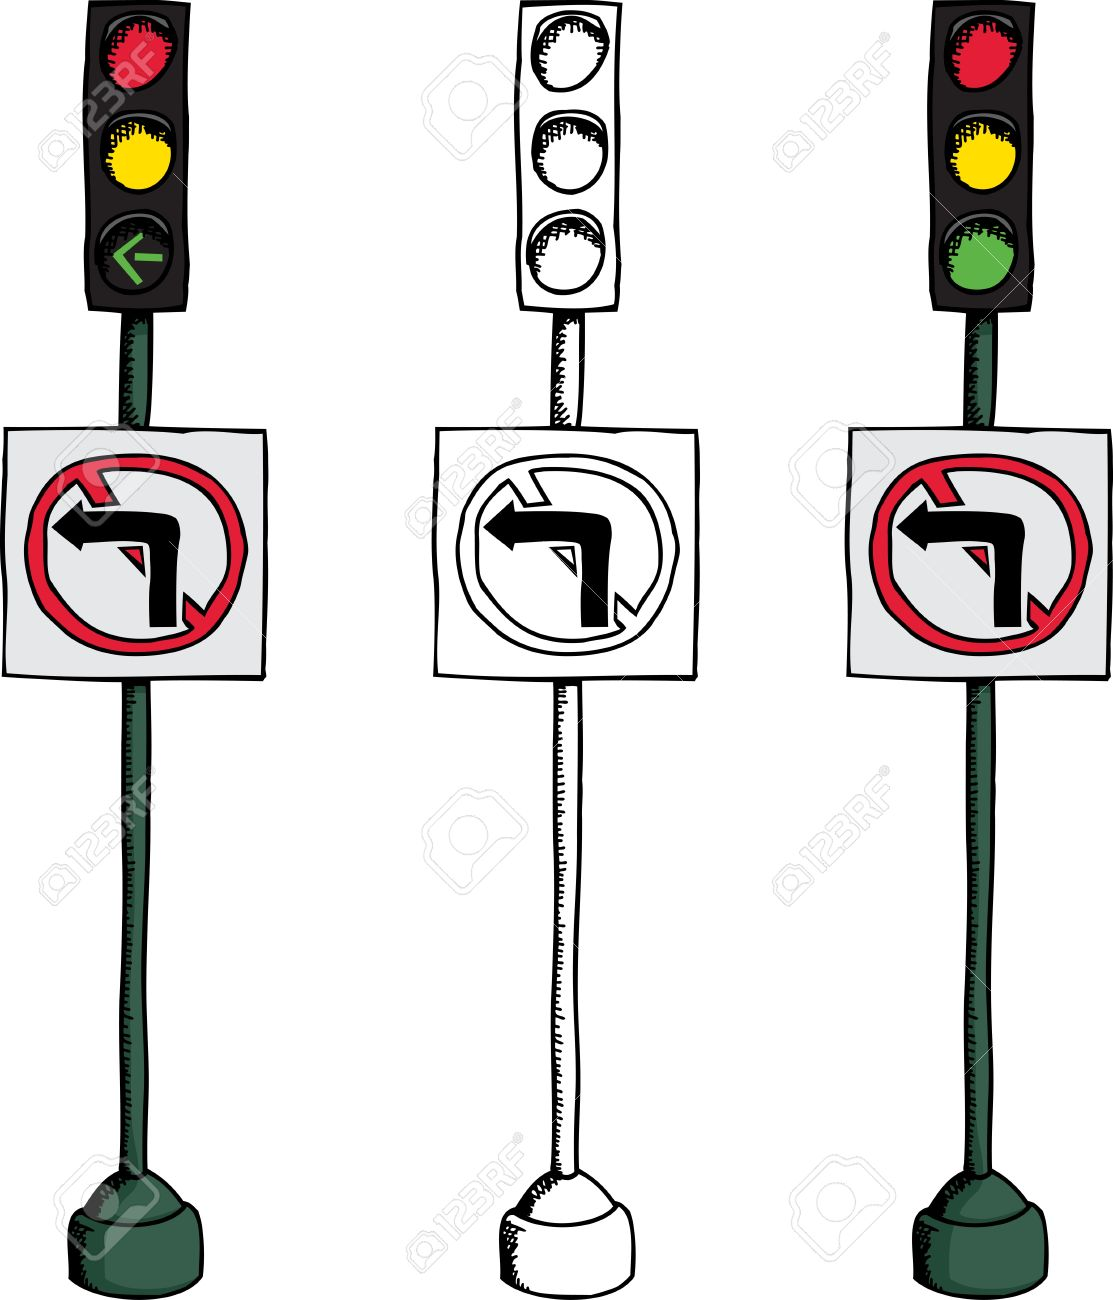 No Left Turn Traffic Light Over White Background Royalty Free ... for Traffic Light Sketch  59jwn